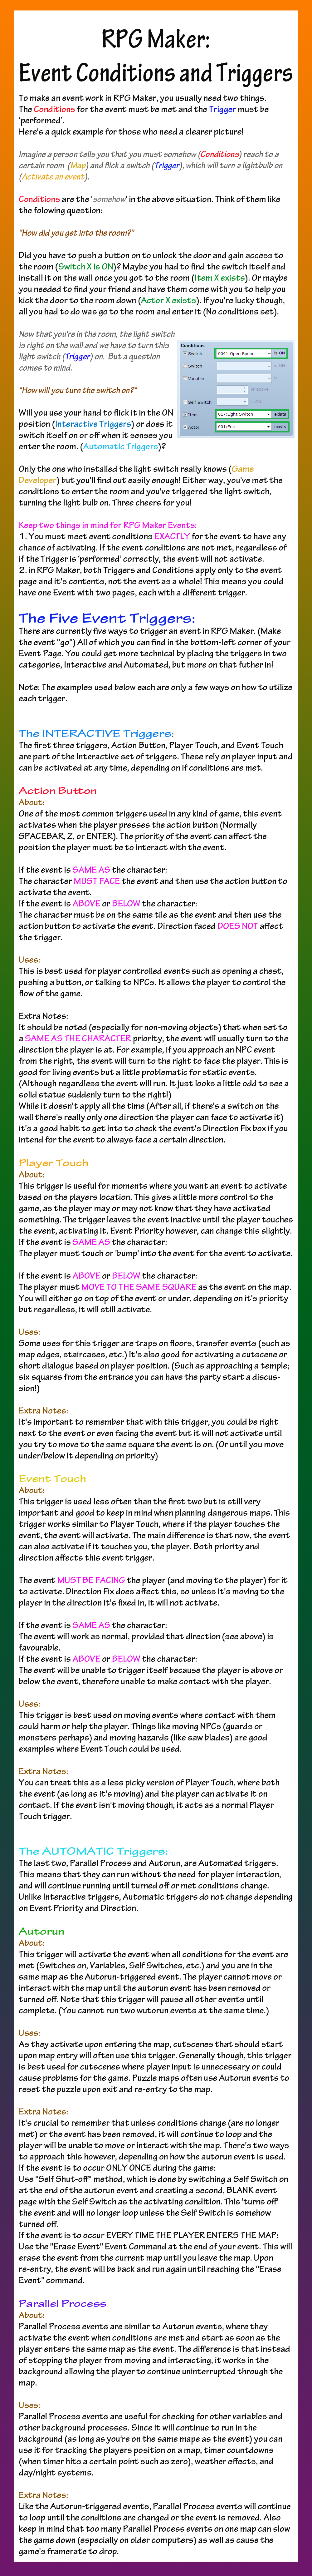 RPG Maker: Event Triggers by AvalonMelody on DeviantArt